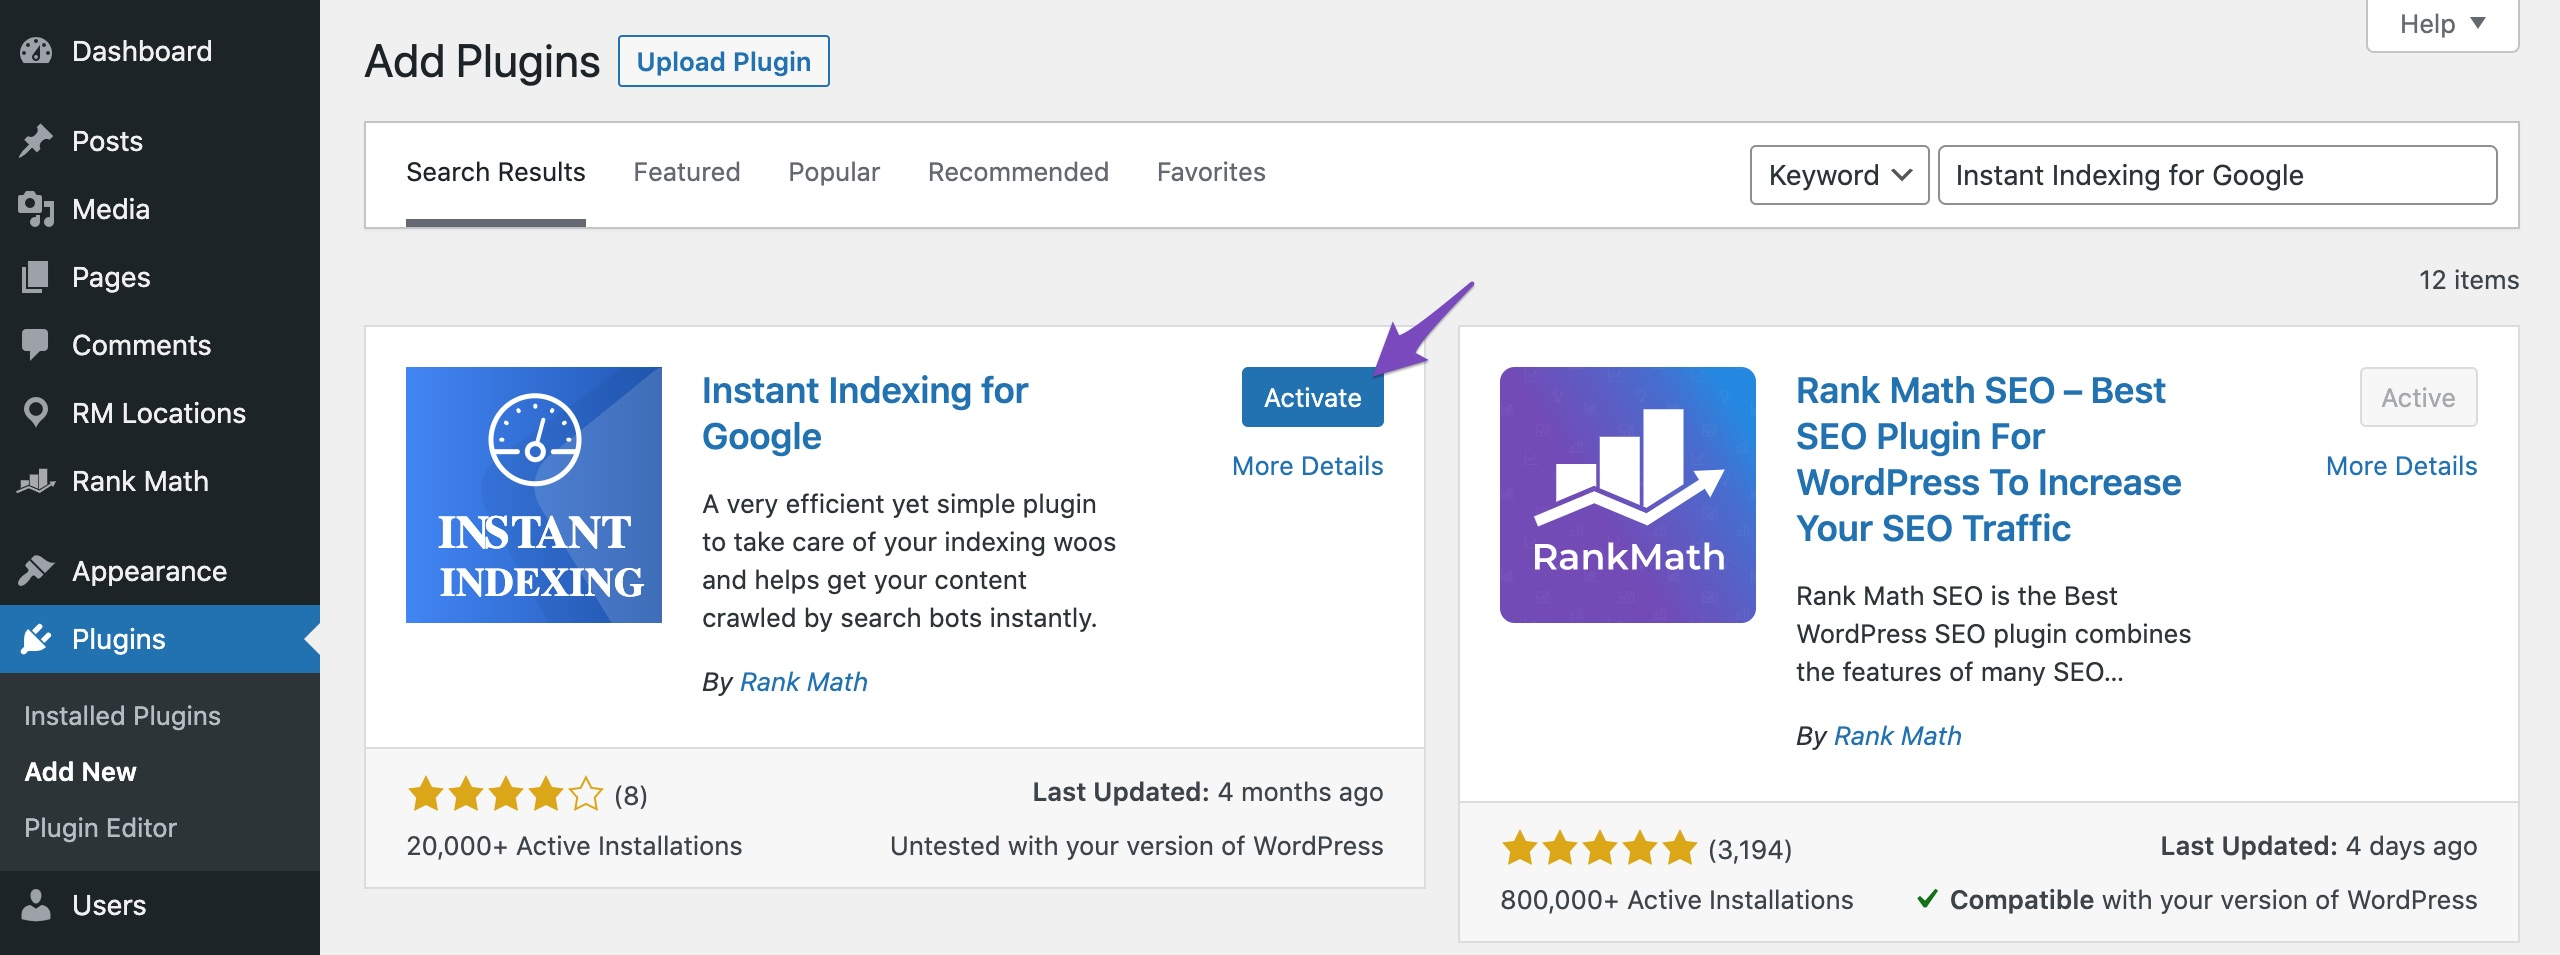 Activate Instant Indexing for Google plugin